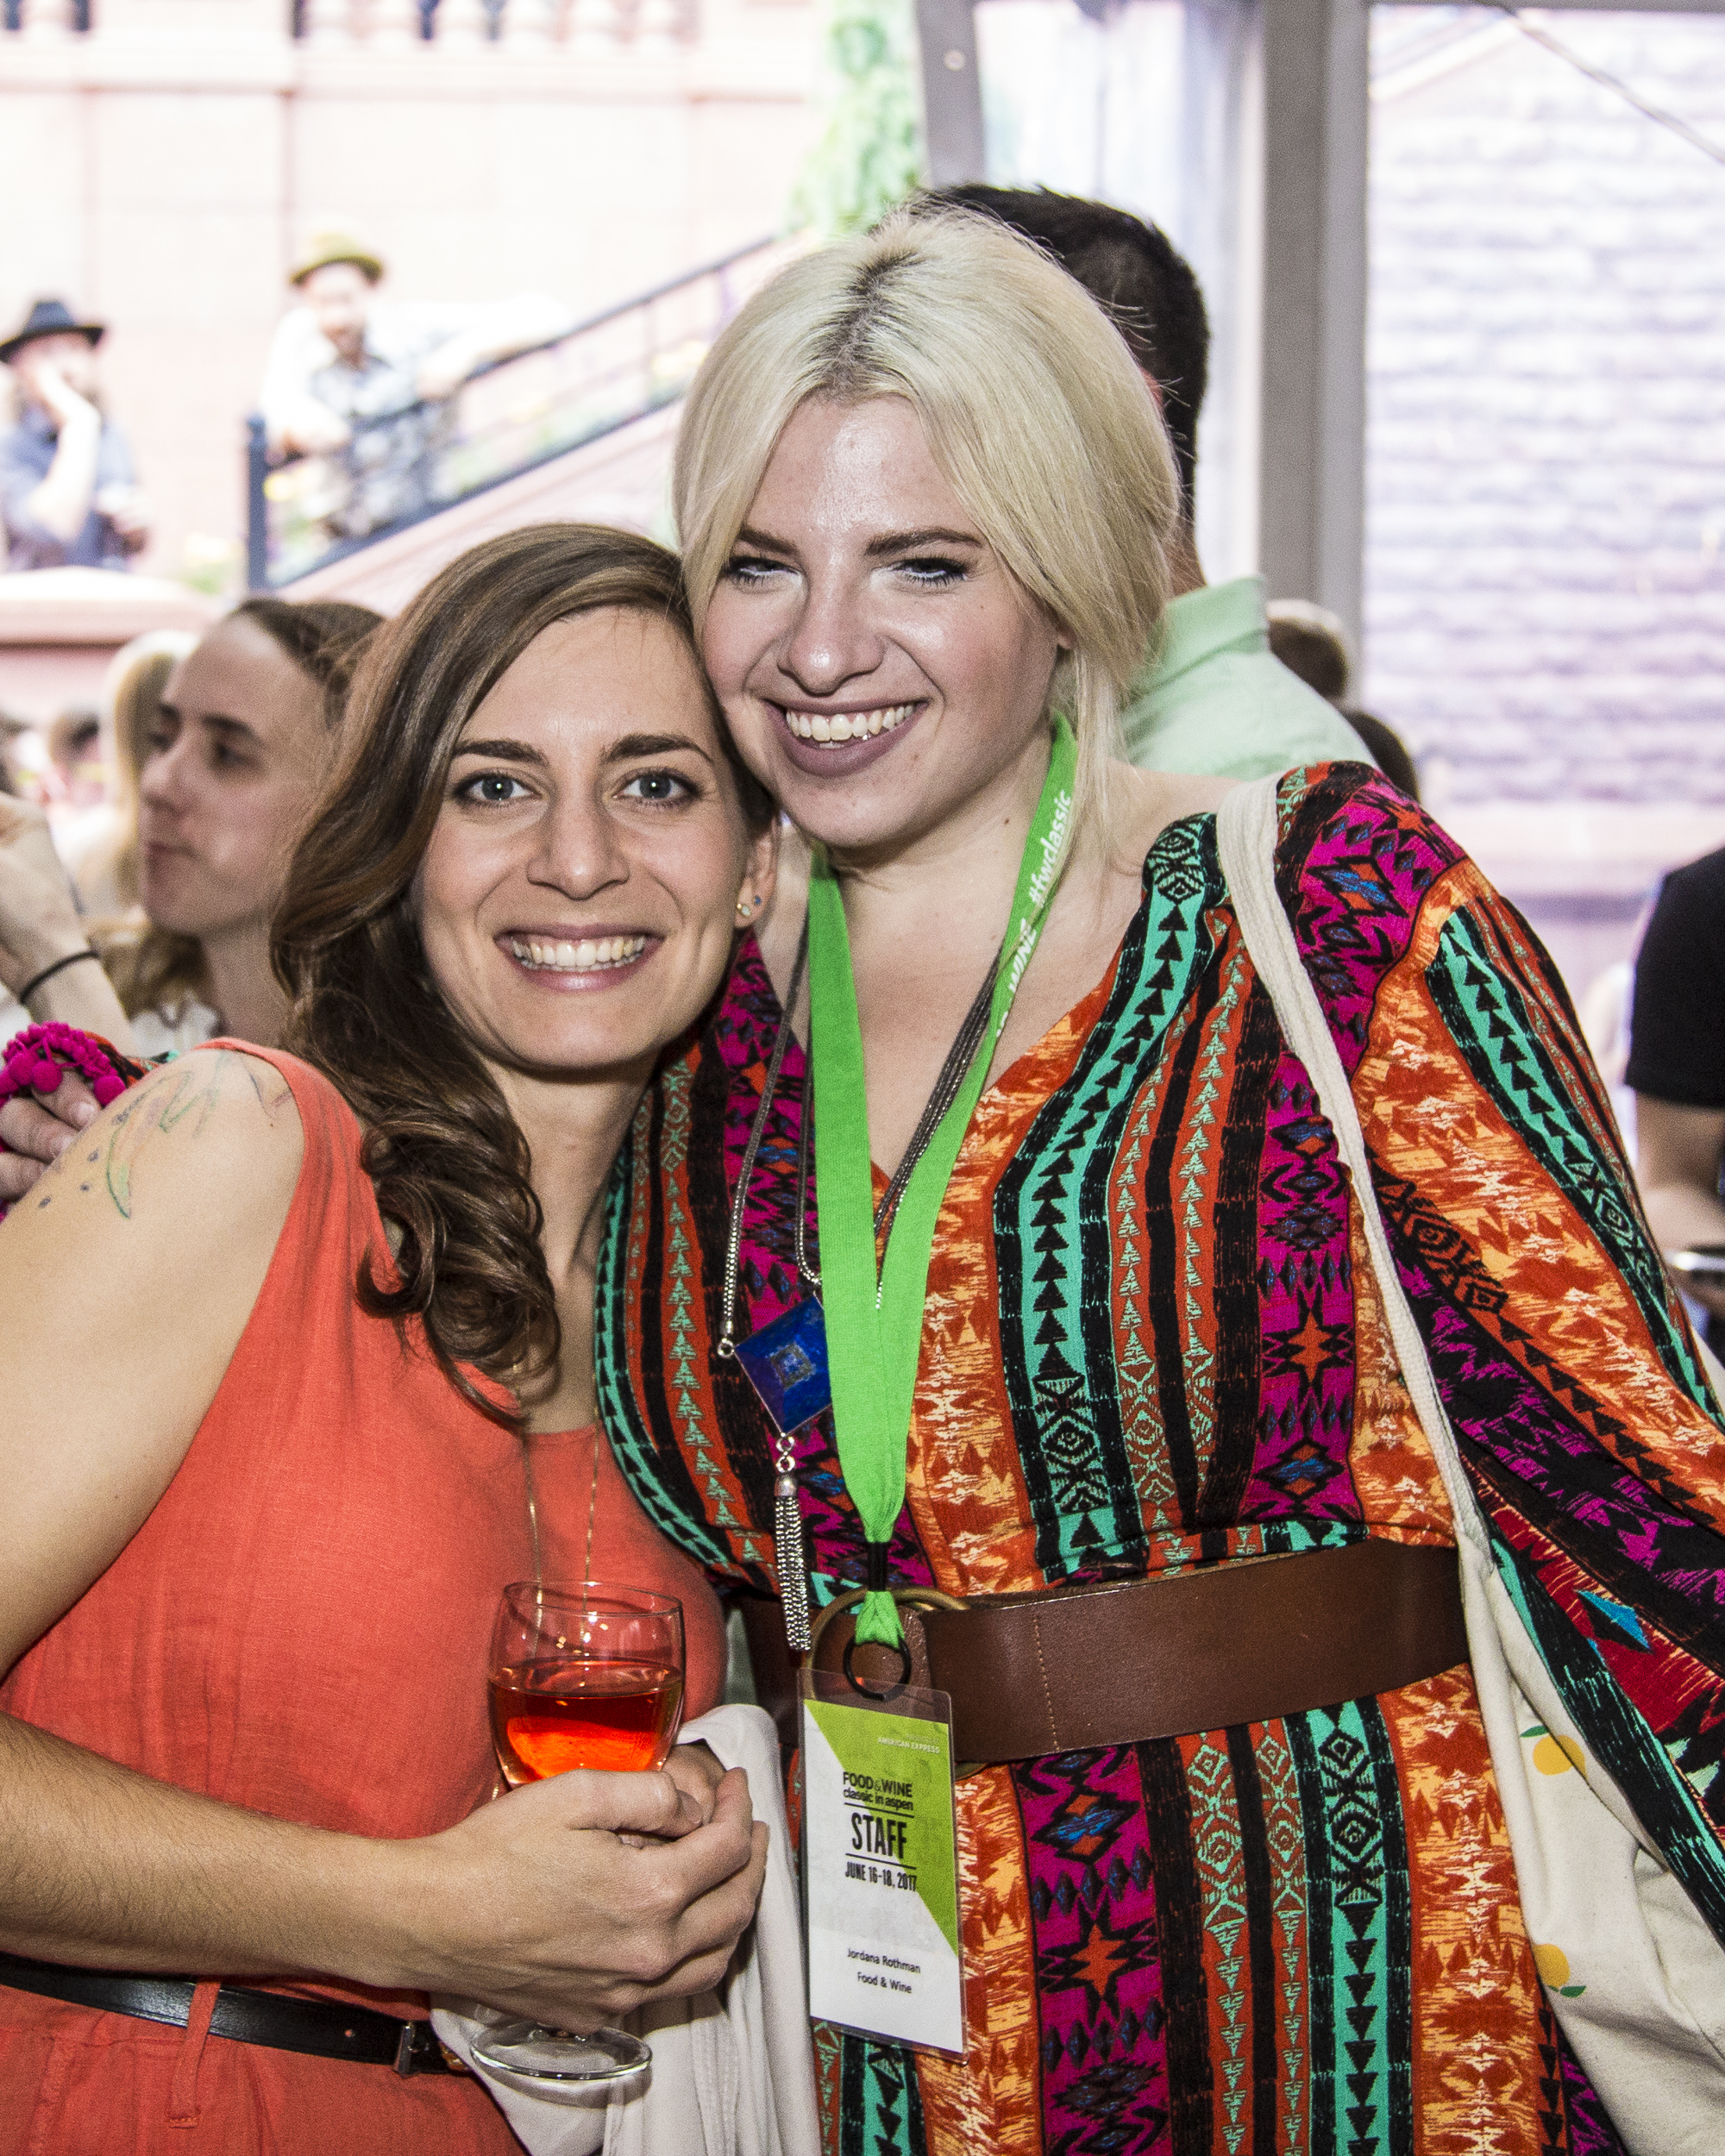 Best New Chef 2017 Sara Kramer of Kismet with Restaurant Editor Jordana Rothman at the Food & Wine Classic in Aspen welcome reception